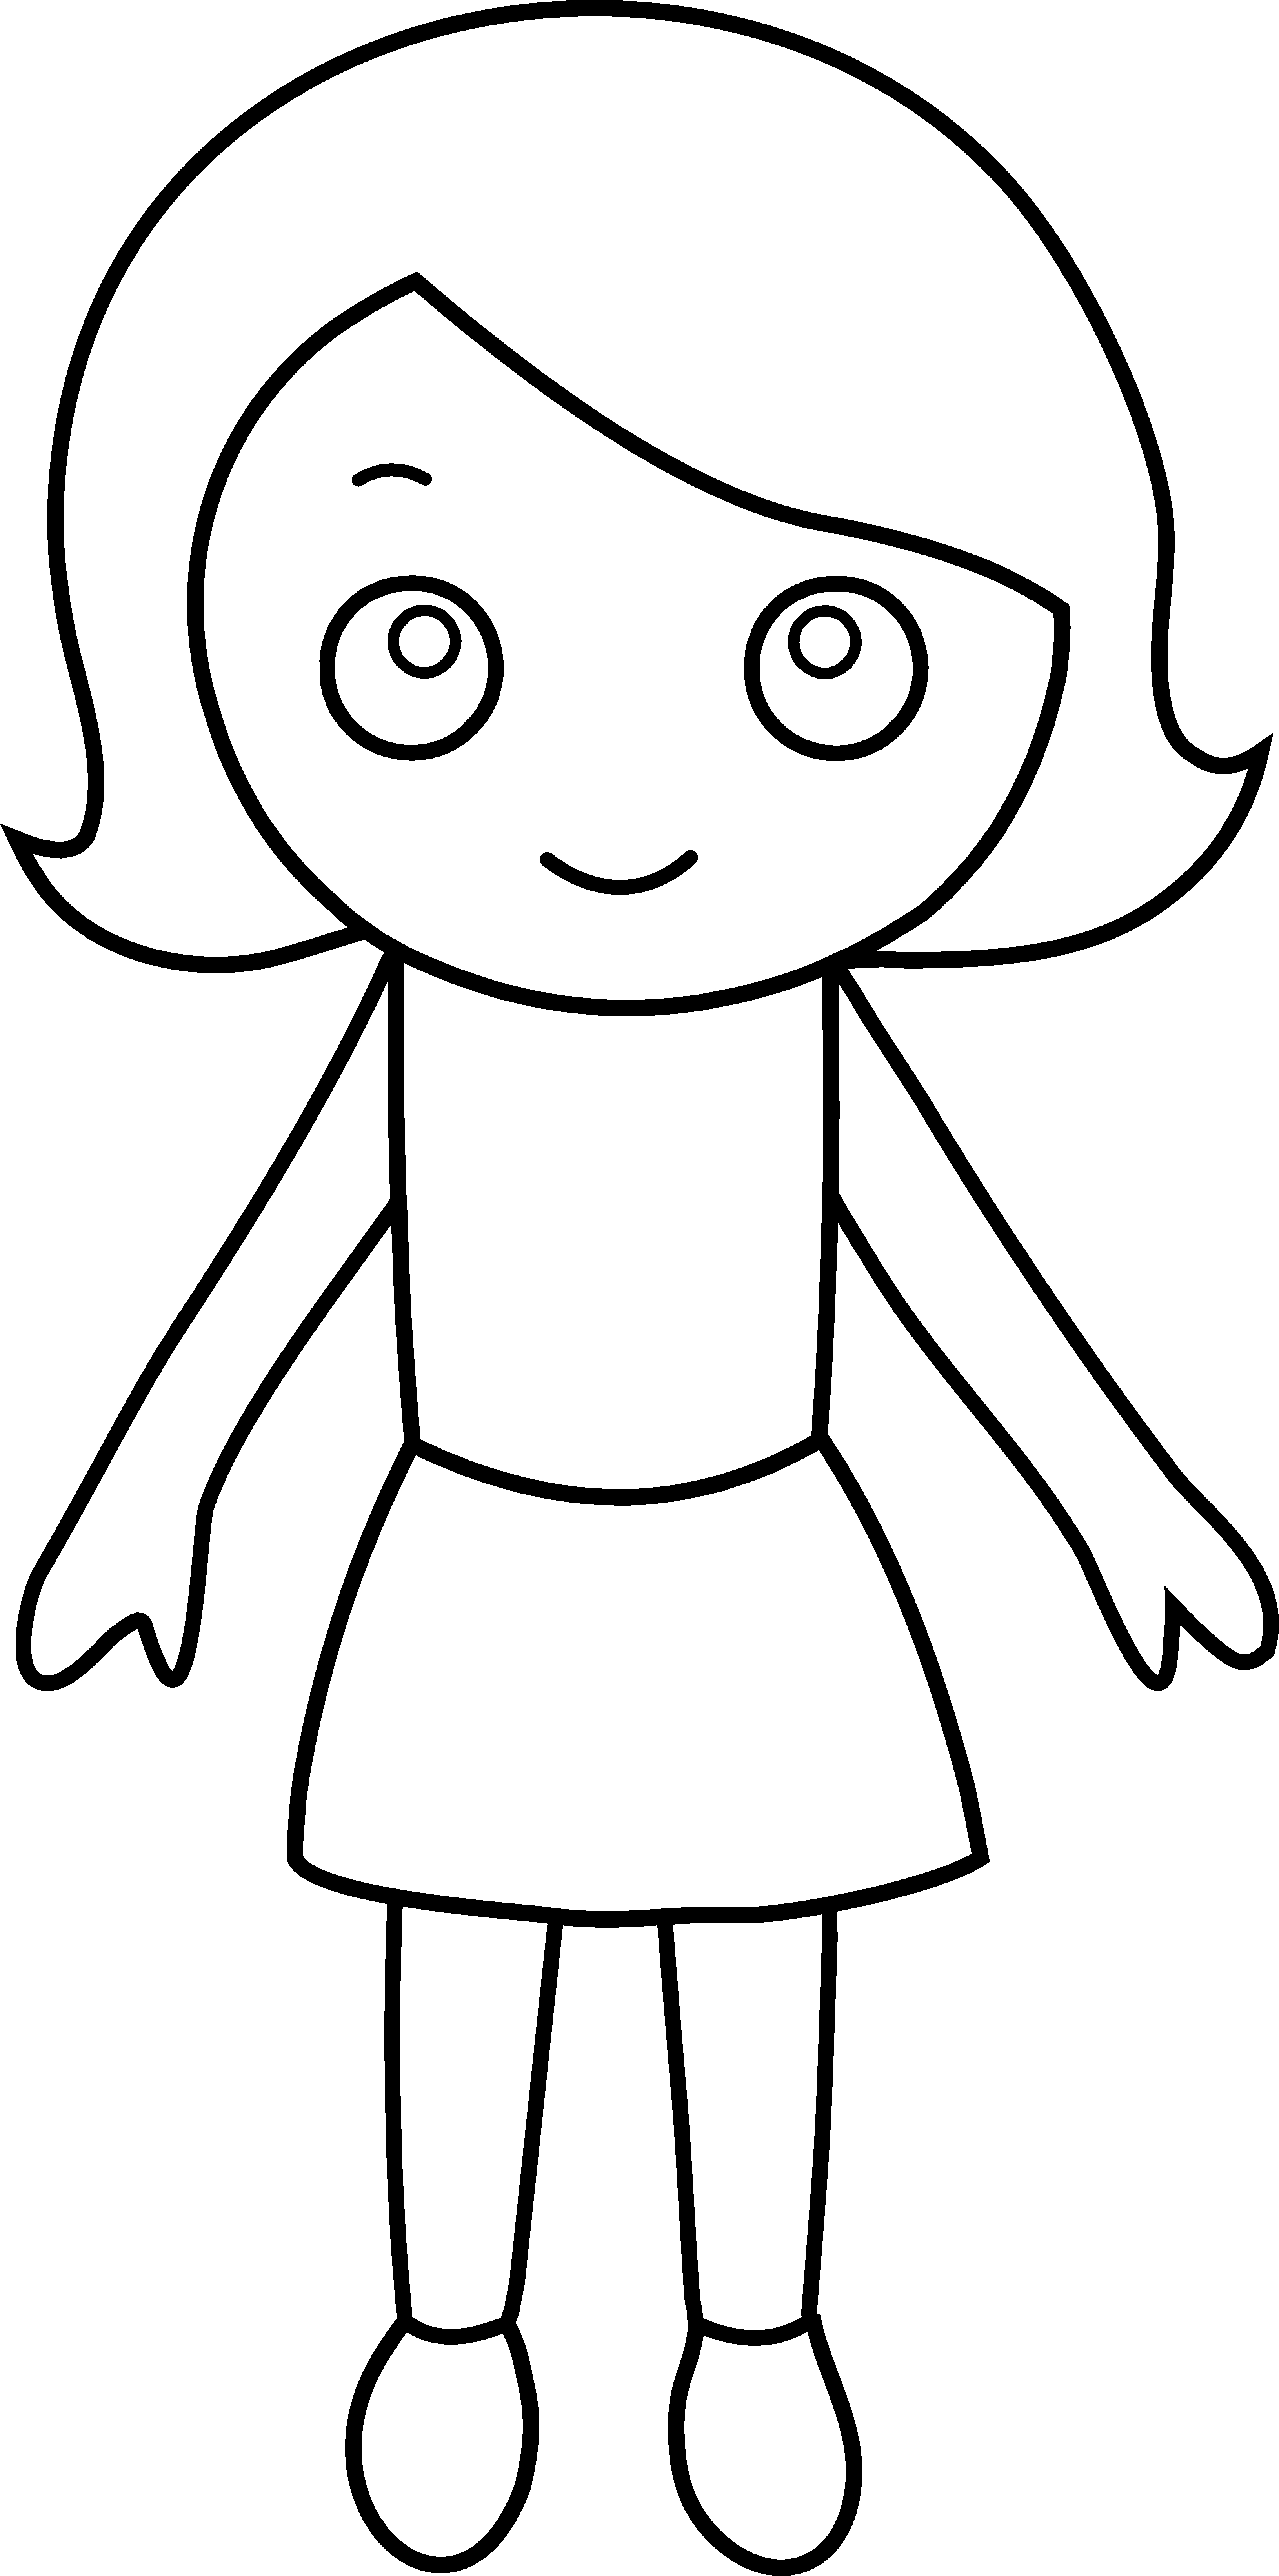 clip art coloring sheets octopus coloring page free clip art clip sheets coloring art